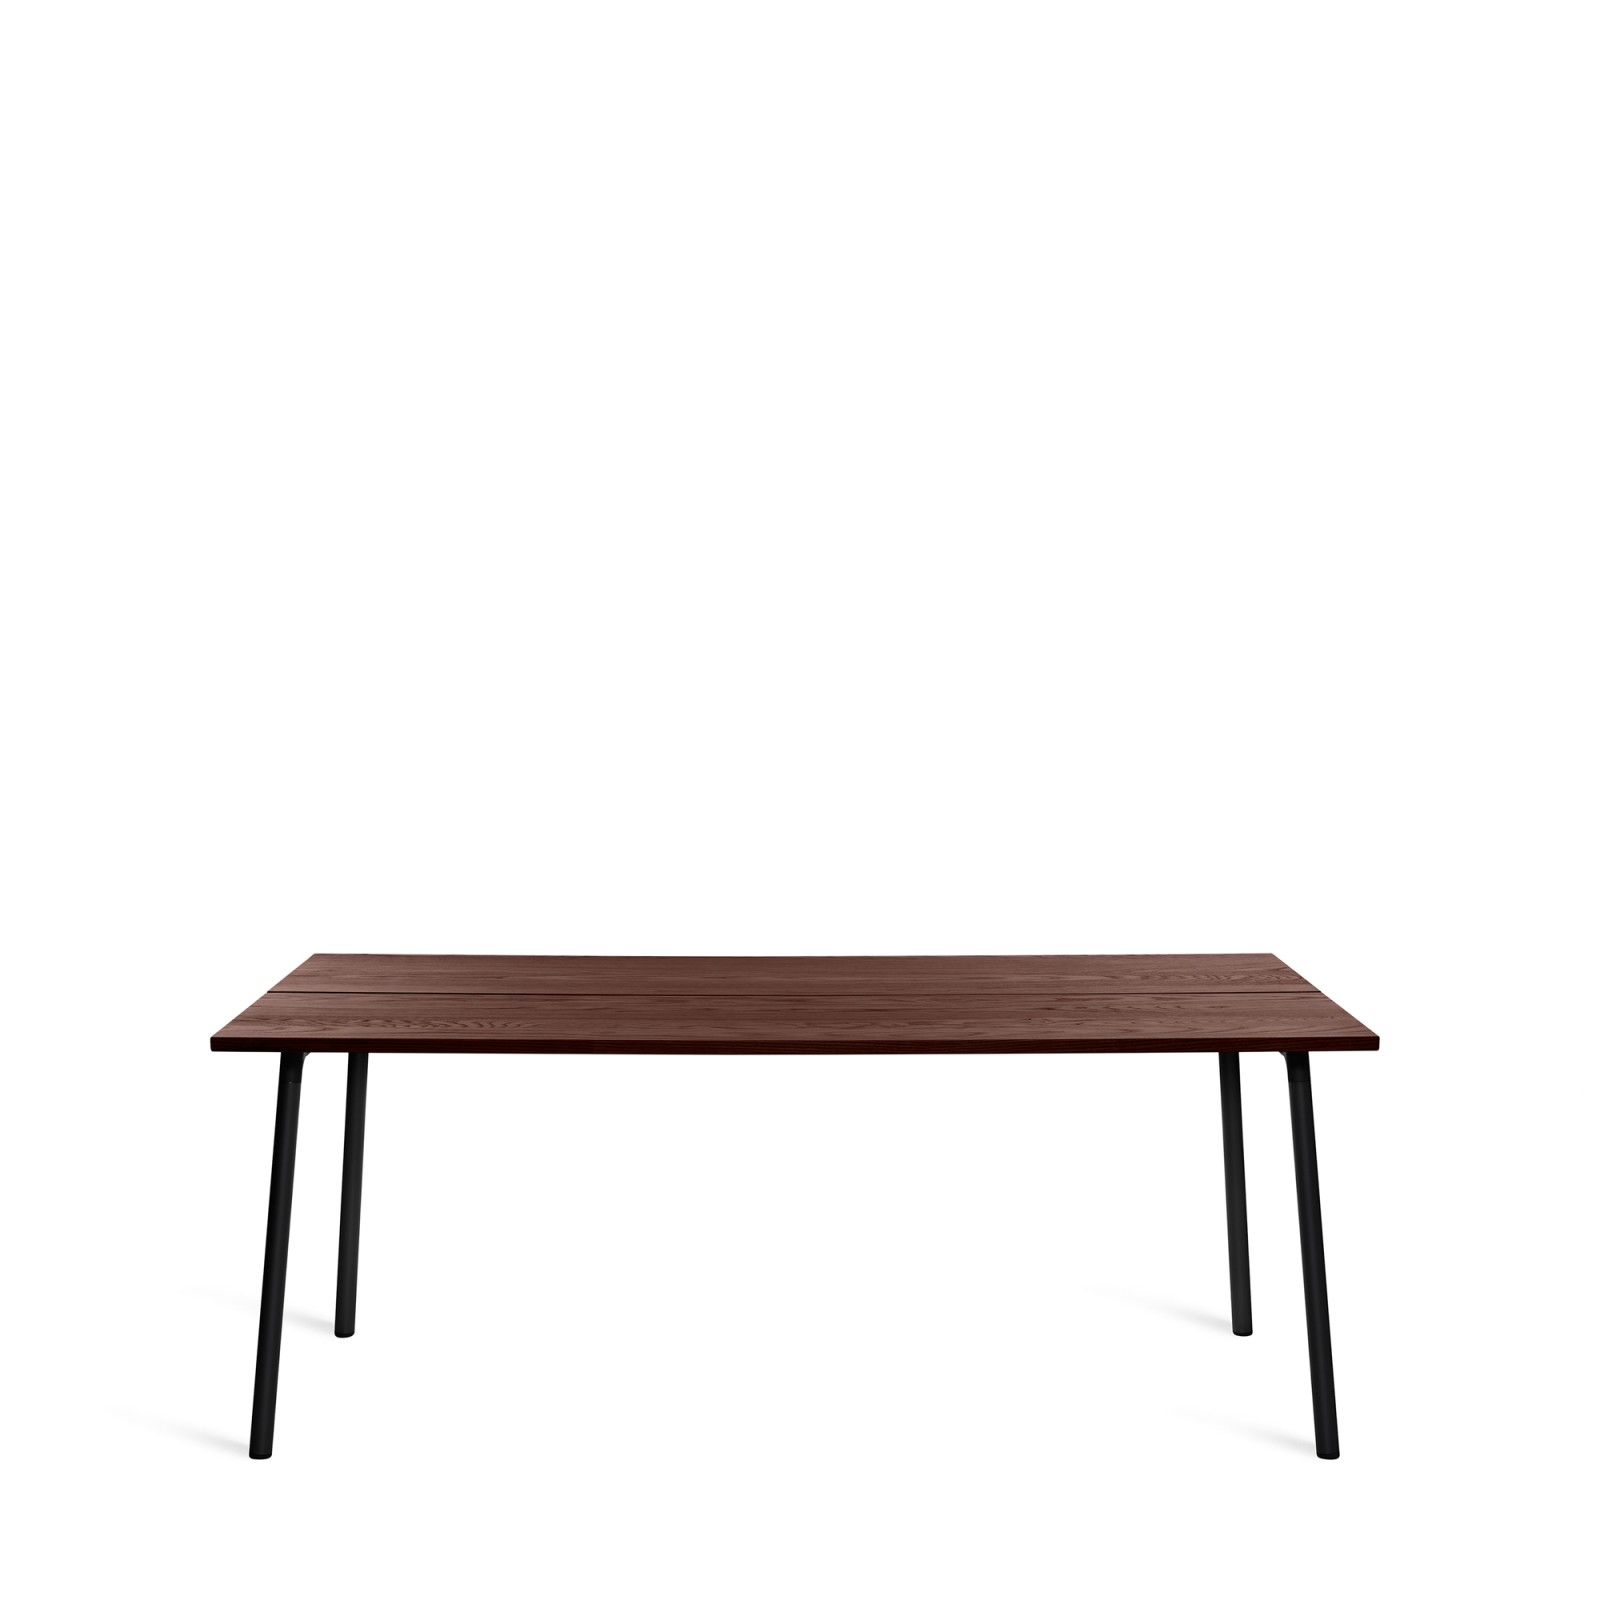 Run Dining Table Rectangular 183cm, Black Powder Coated, Walnut